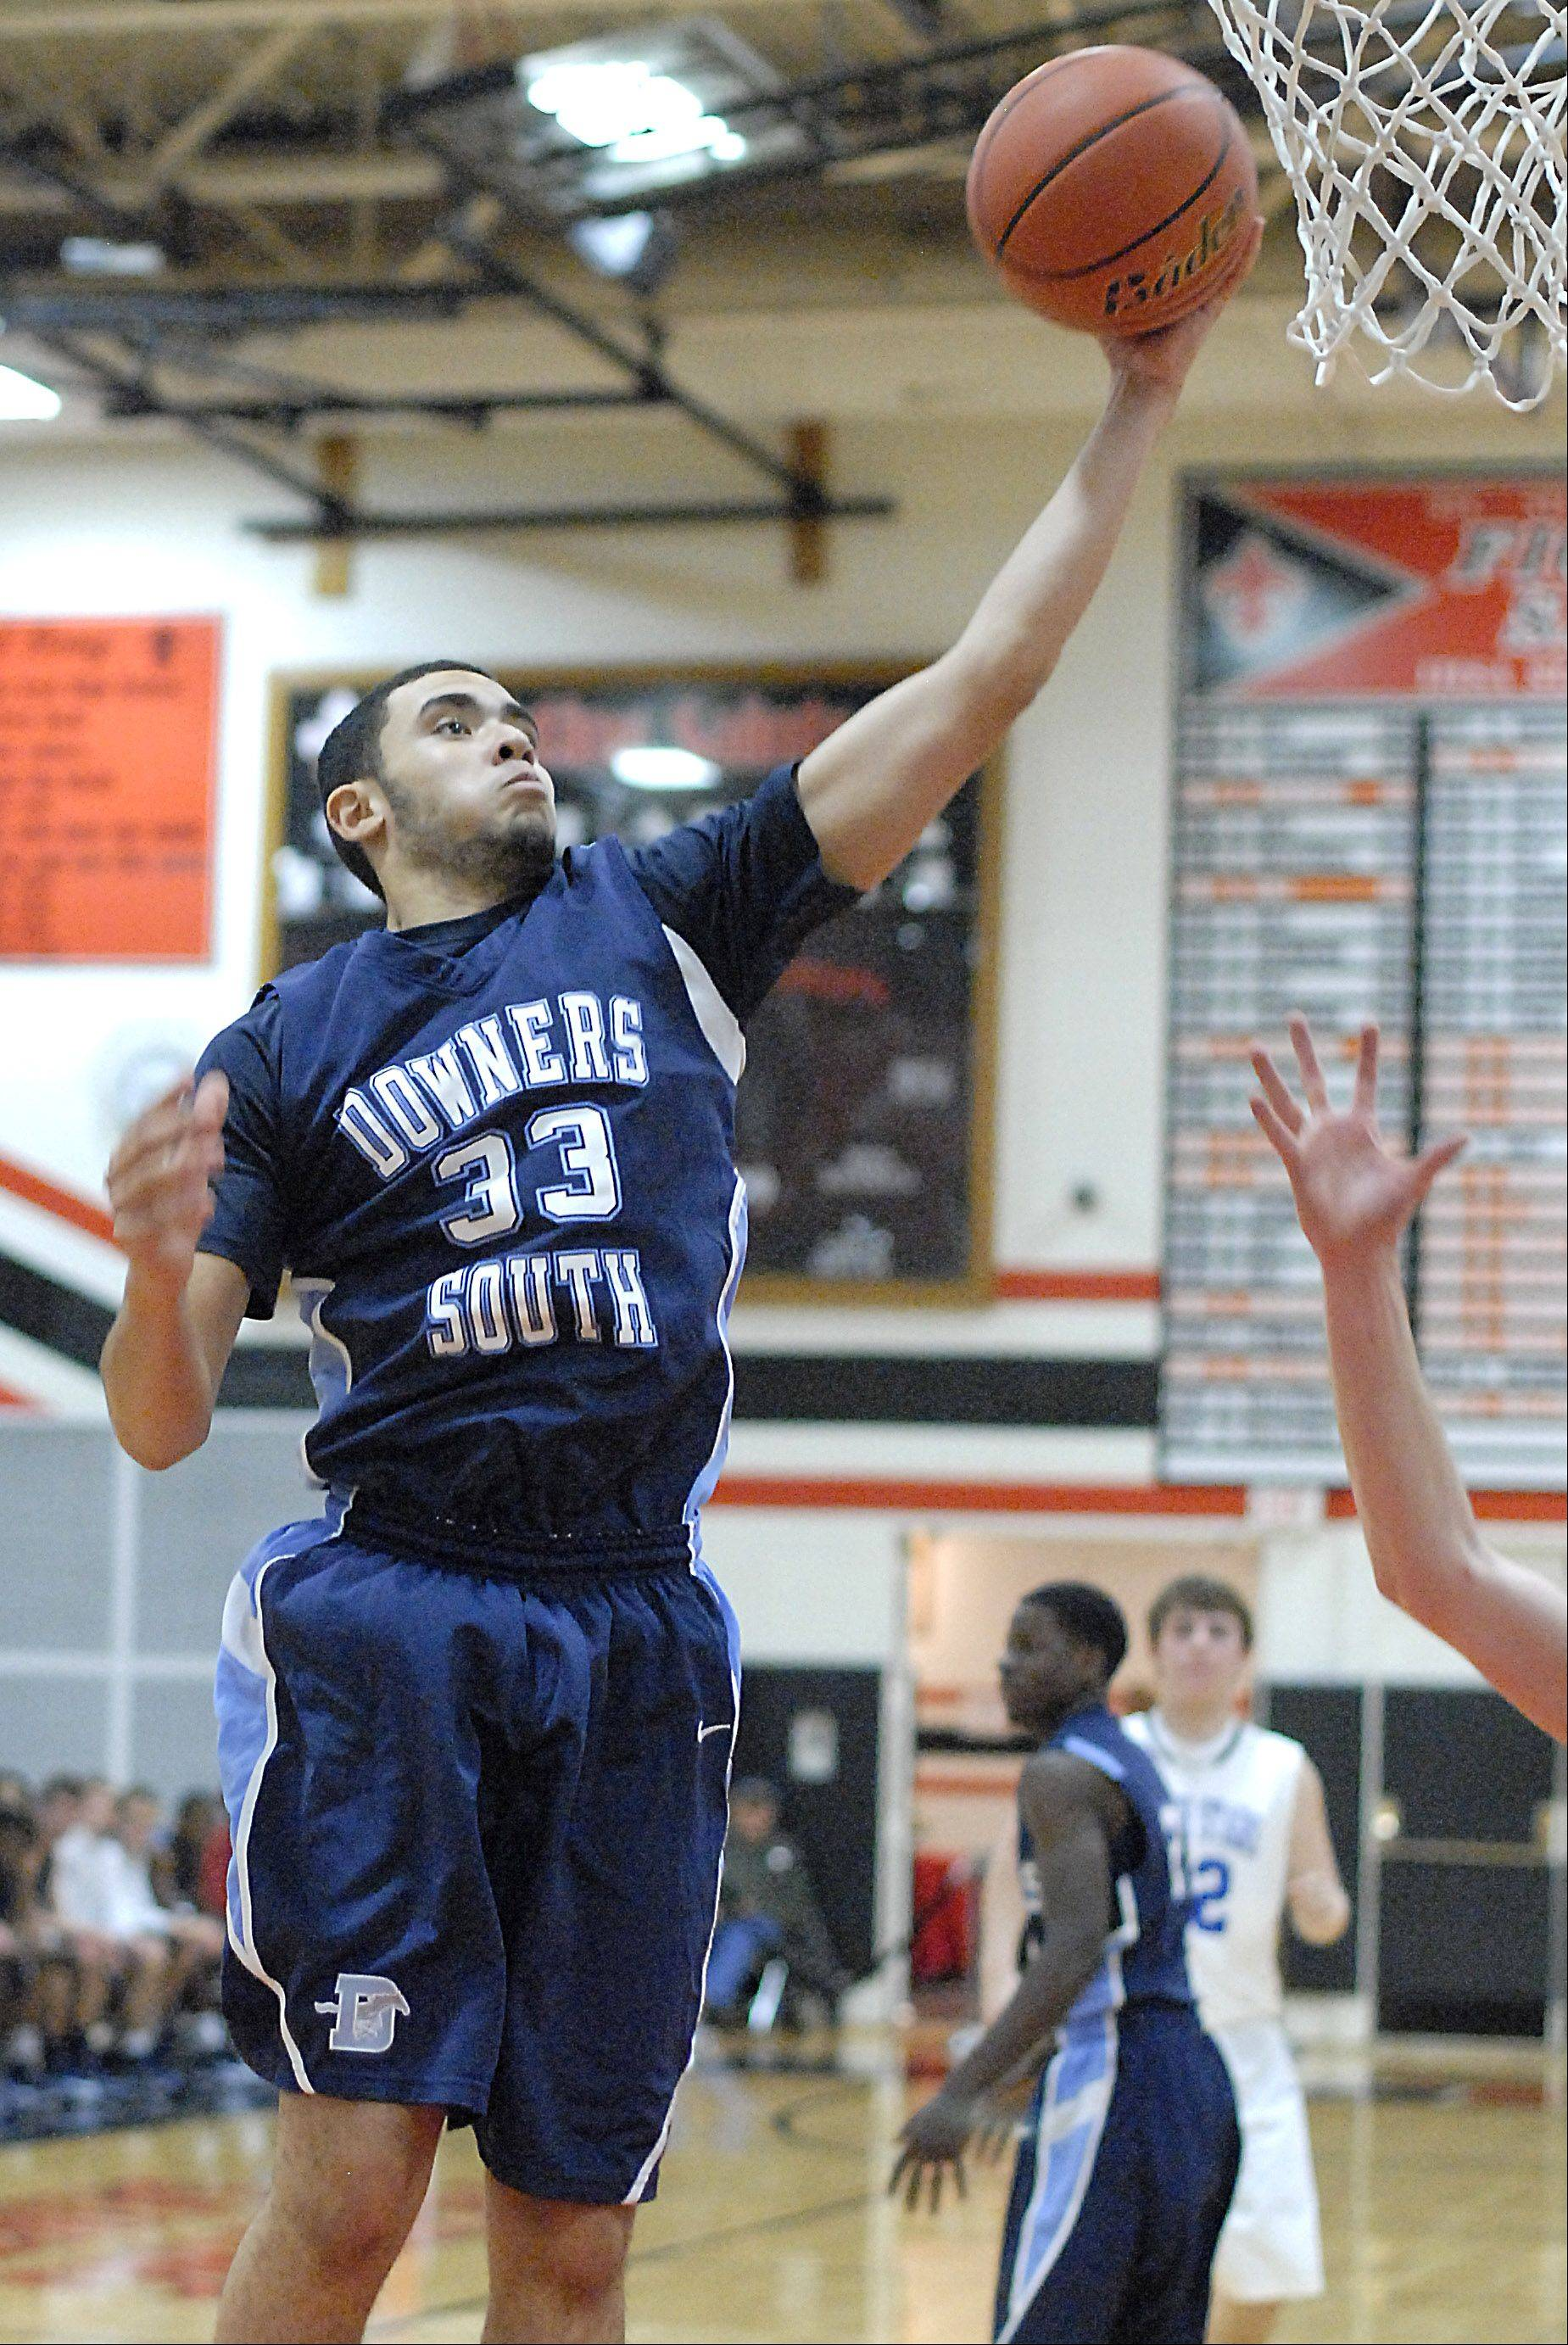 Downers Grove South's Jordan Cannon grabs a rebound in the third quarter on Friday, November 23.